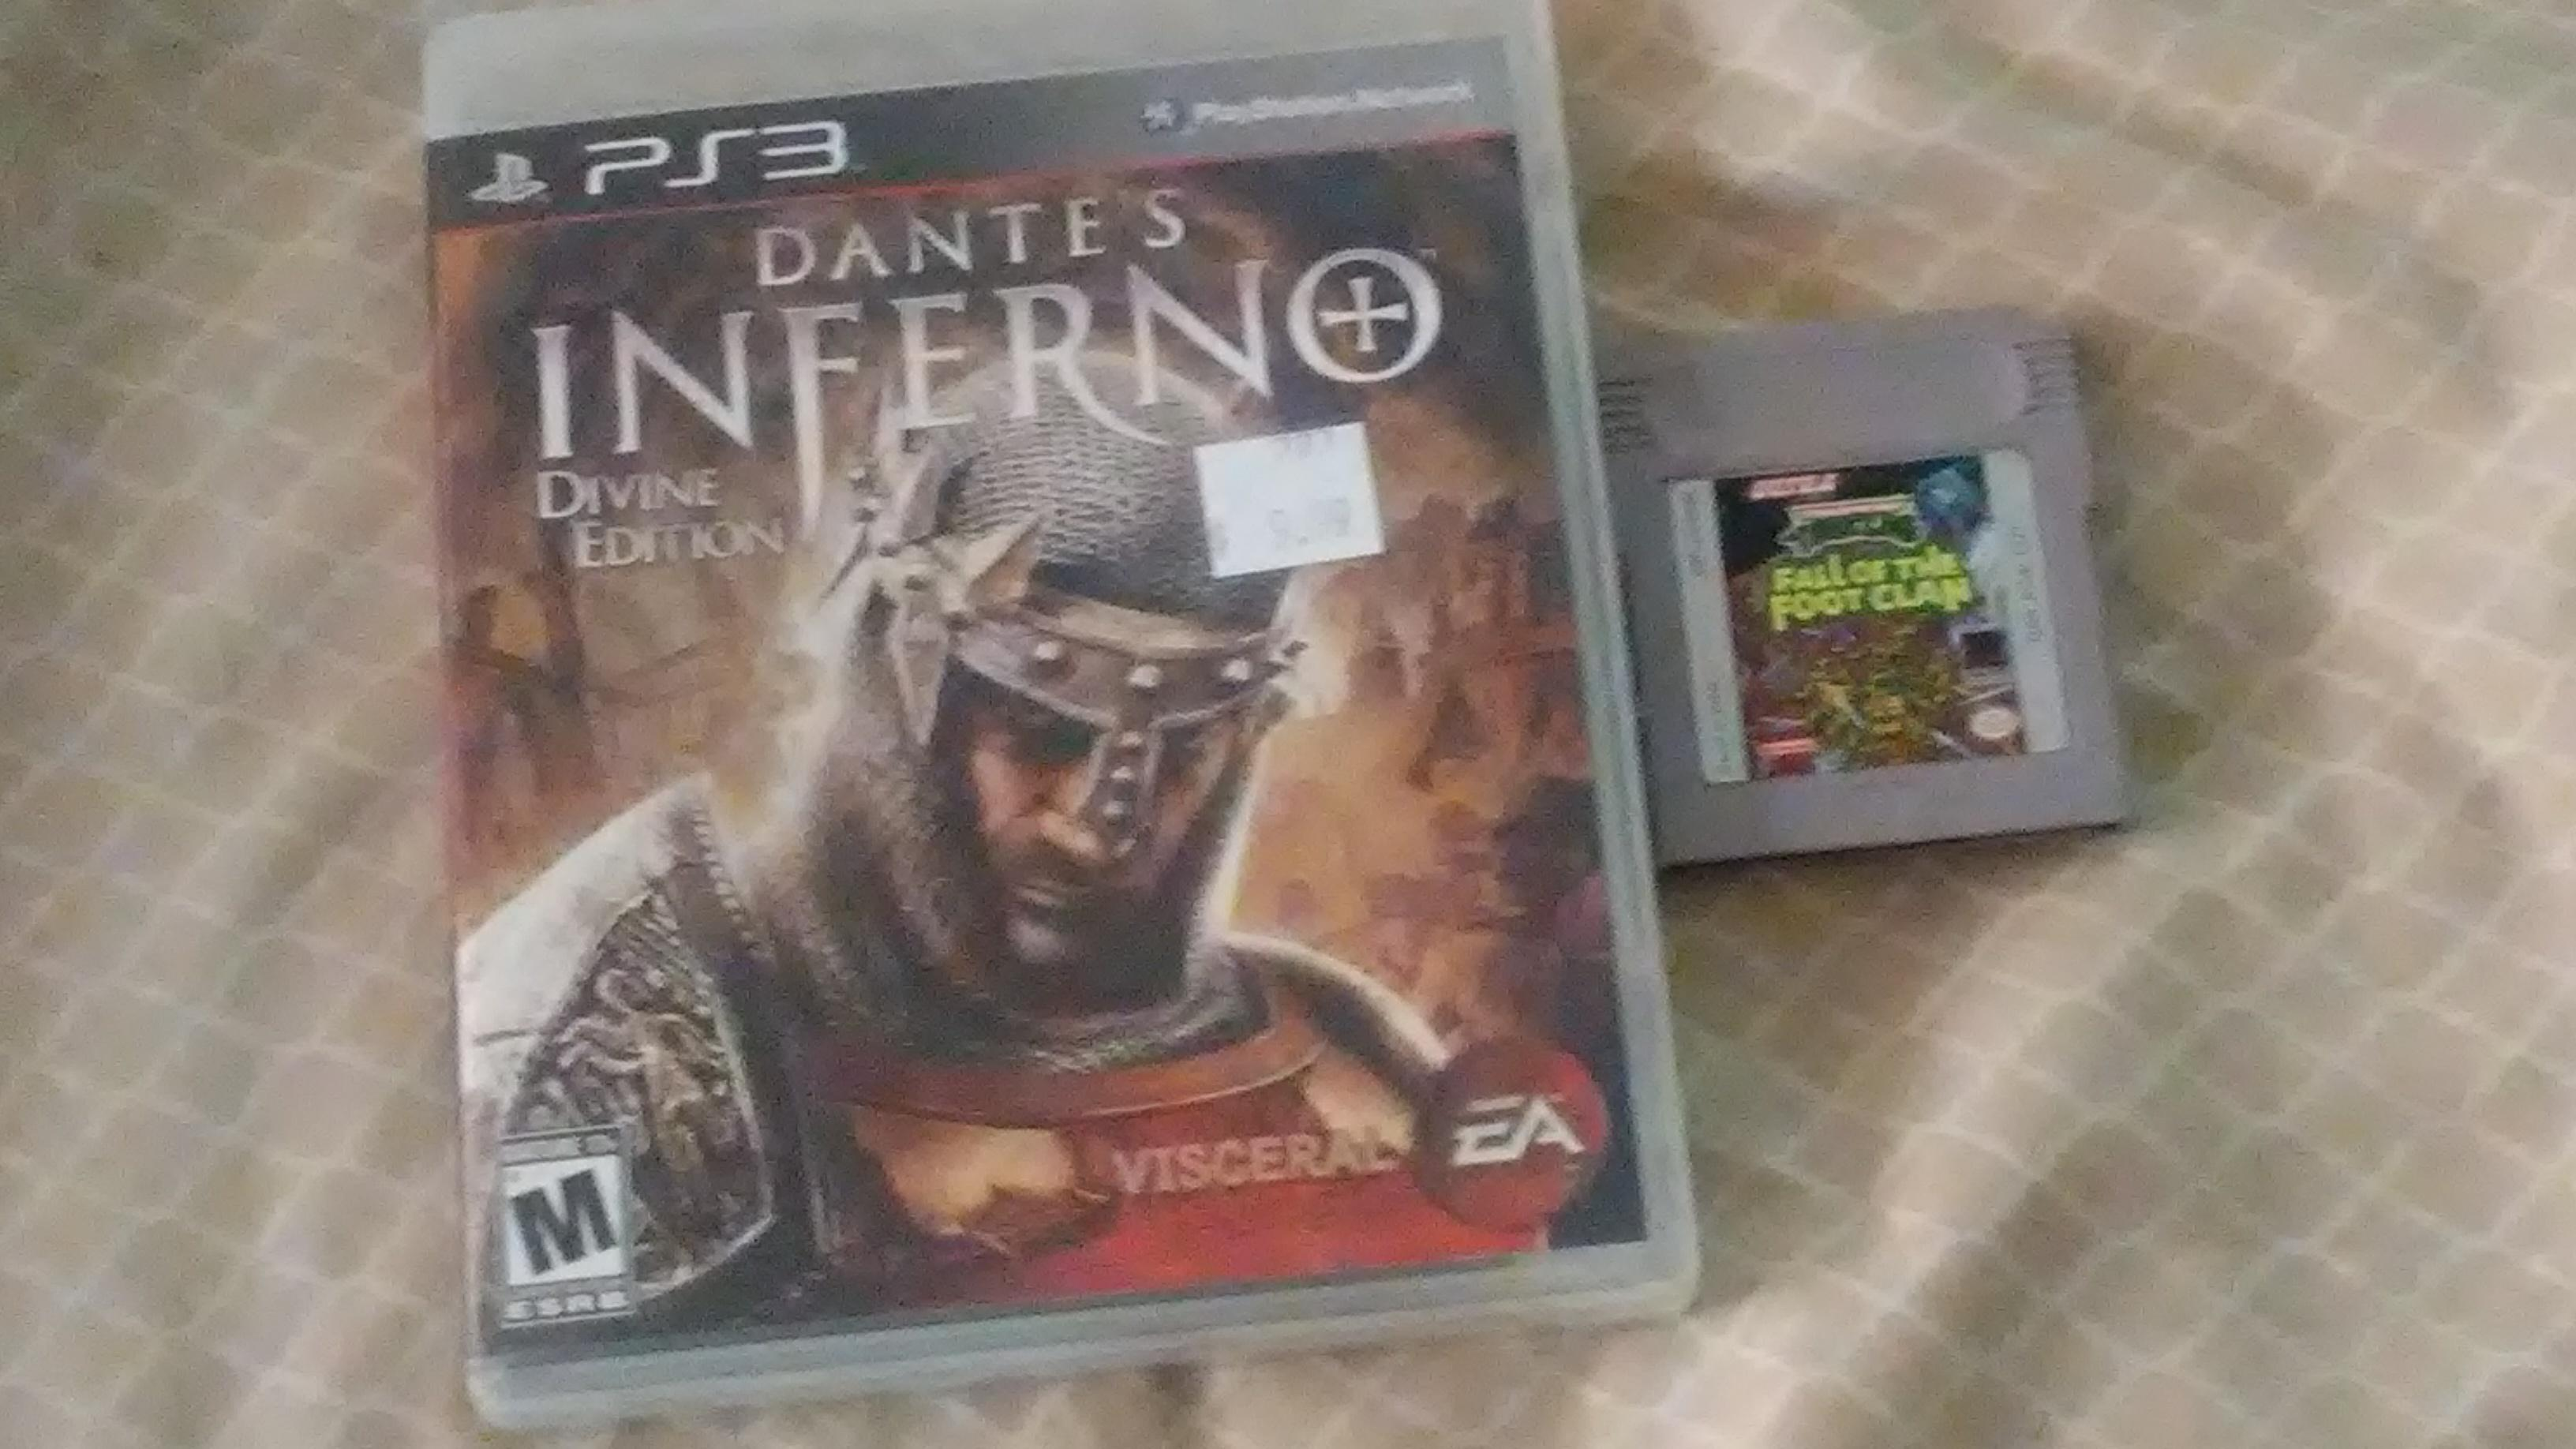 Edition For Ps3 Dante S Infeno Divine Edition Ps3 And Tmnt Fall Of The Foot